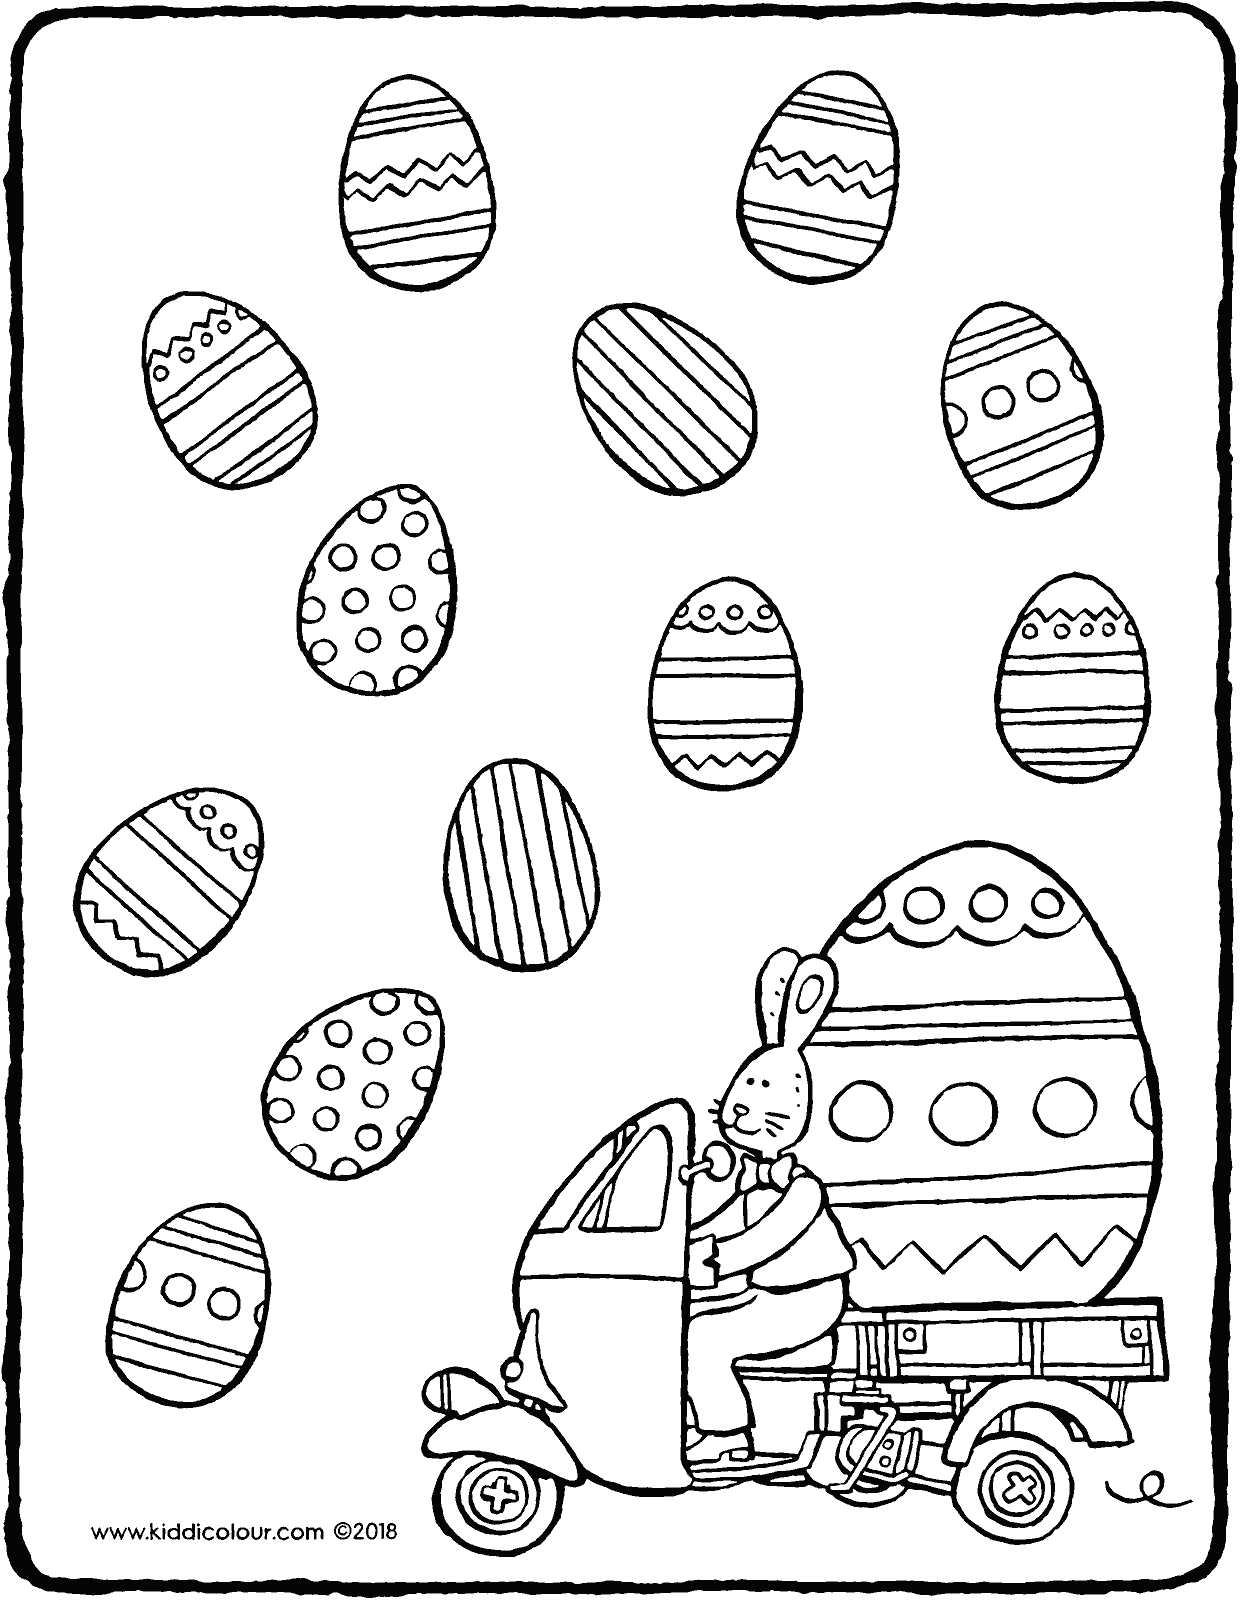 observation colour in the identical easter eggs colouring page drawing picture 01V